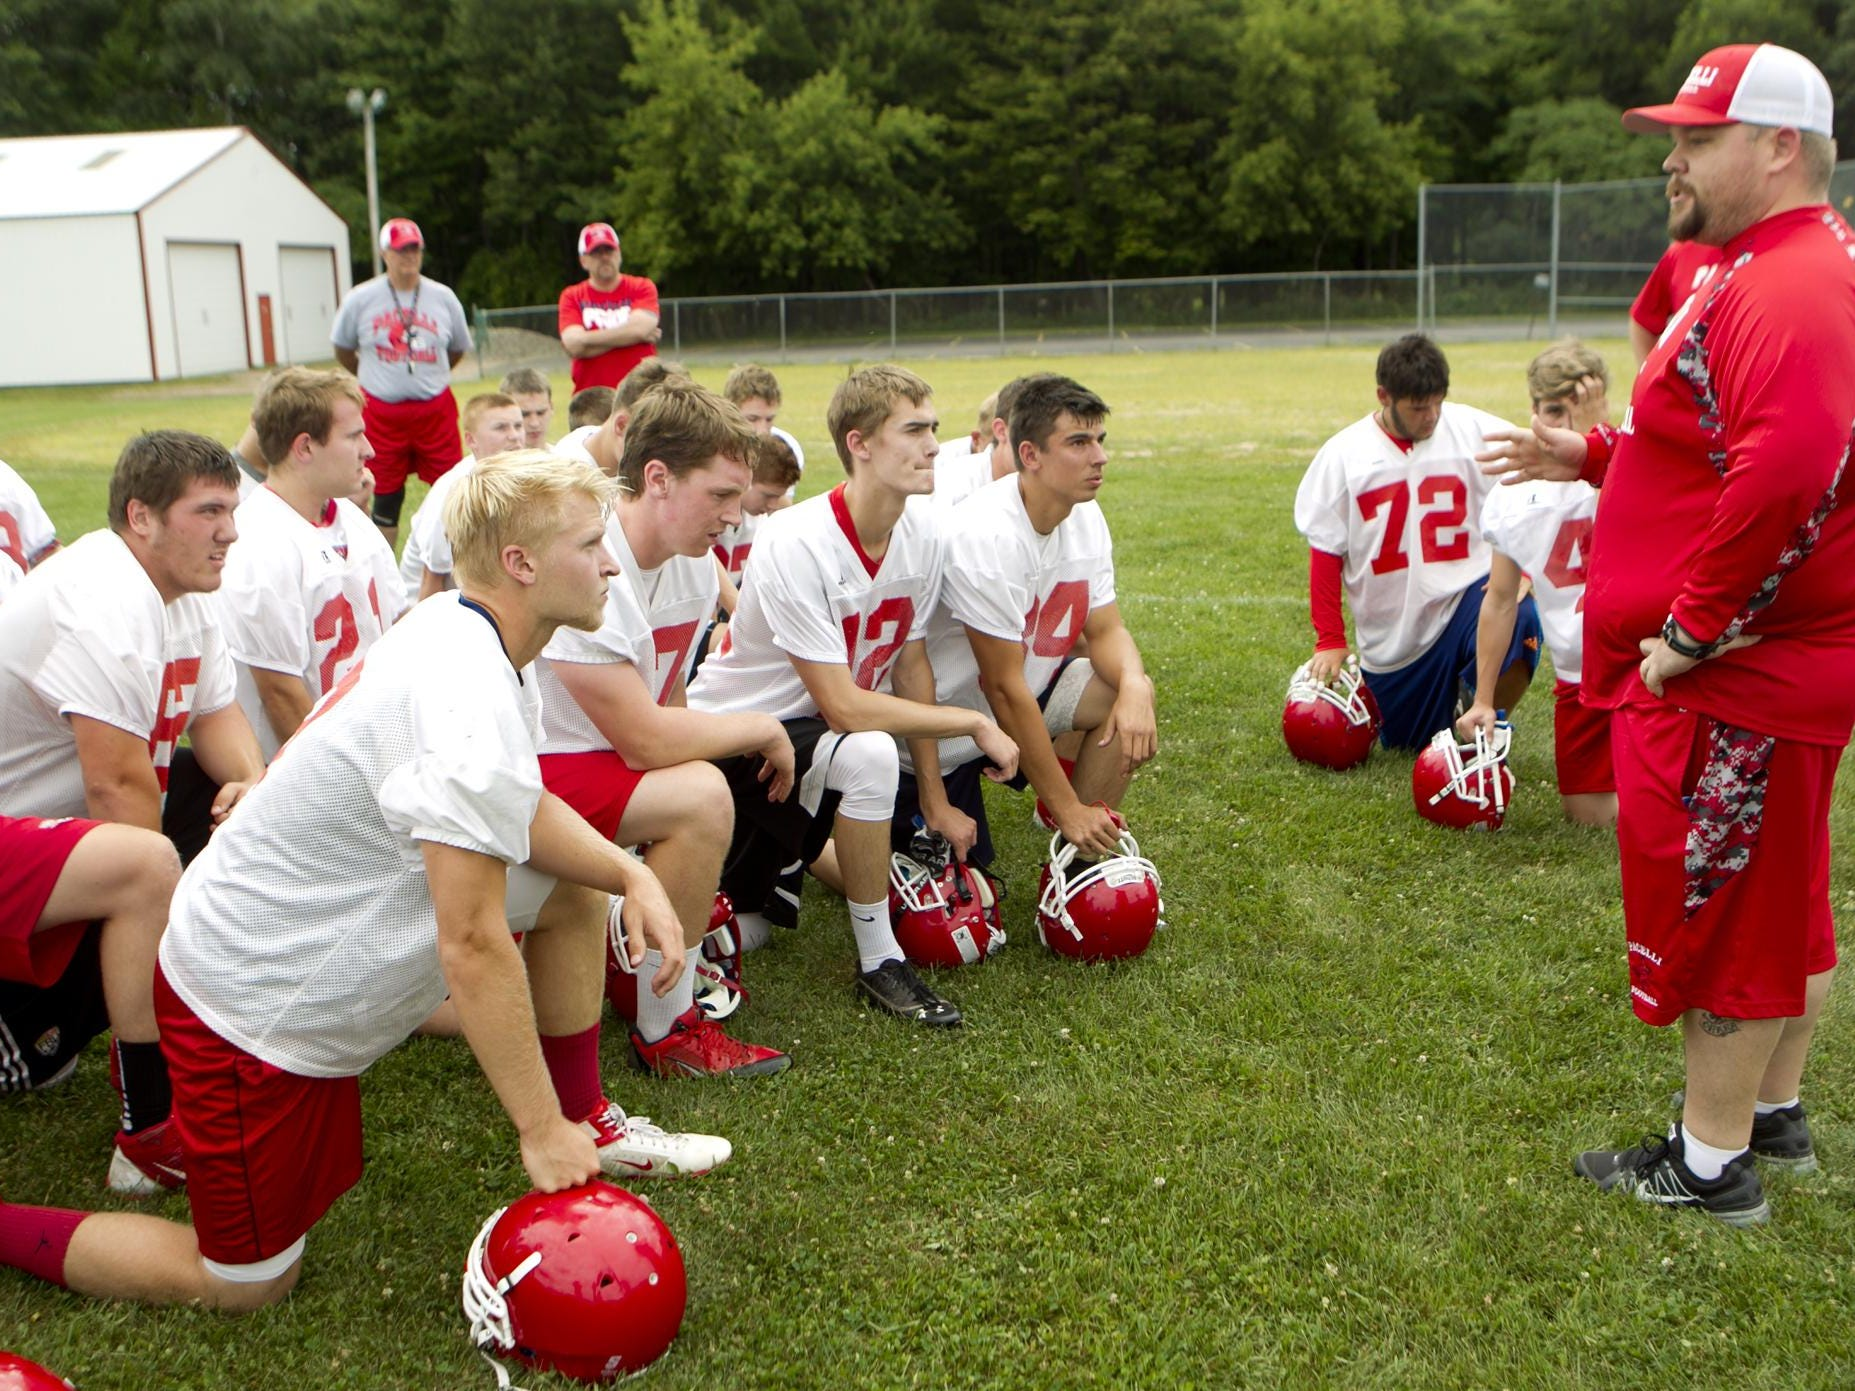 First-year Pacelli coach Drew Nelson addresses the football players on the first day of practice at Pacelli High School, Tuesday, Aug. 4, 2015.